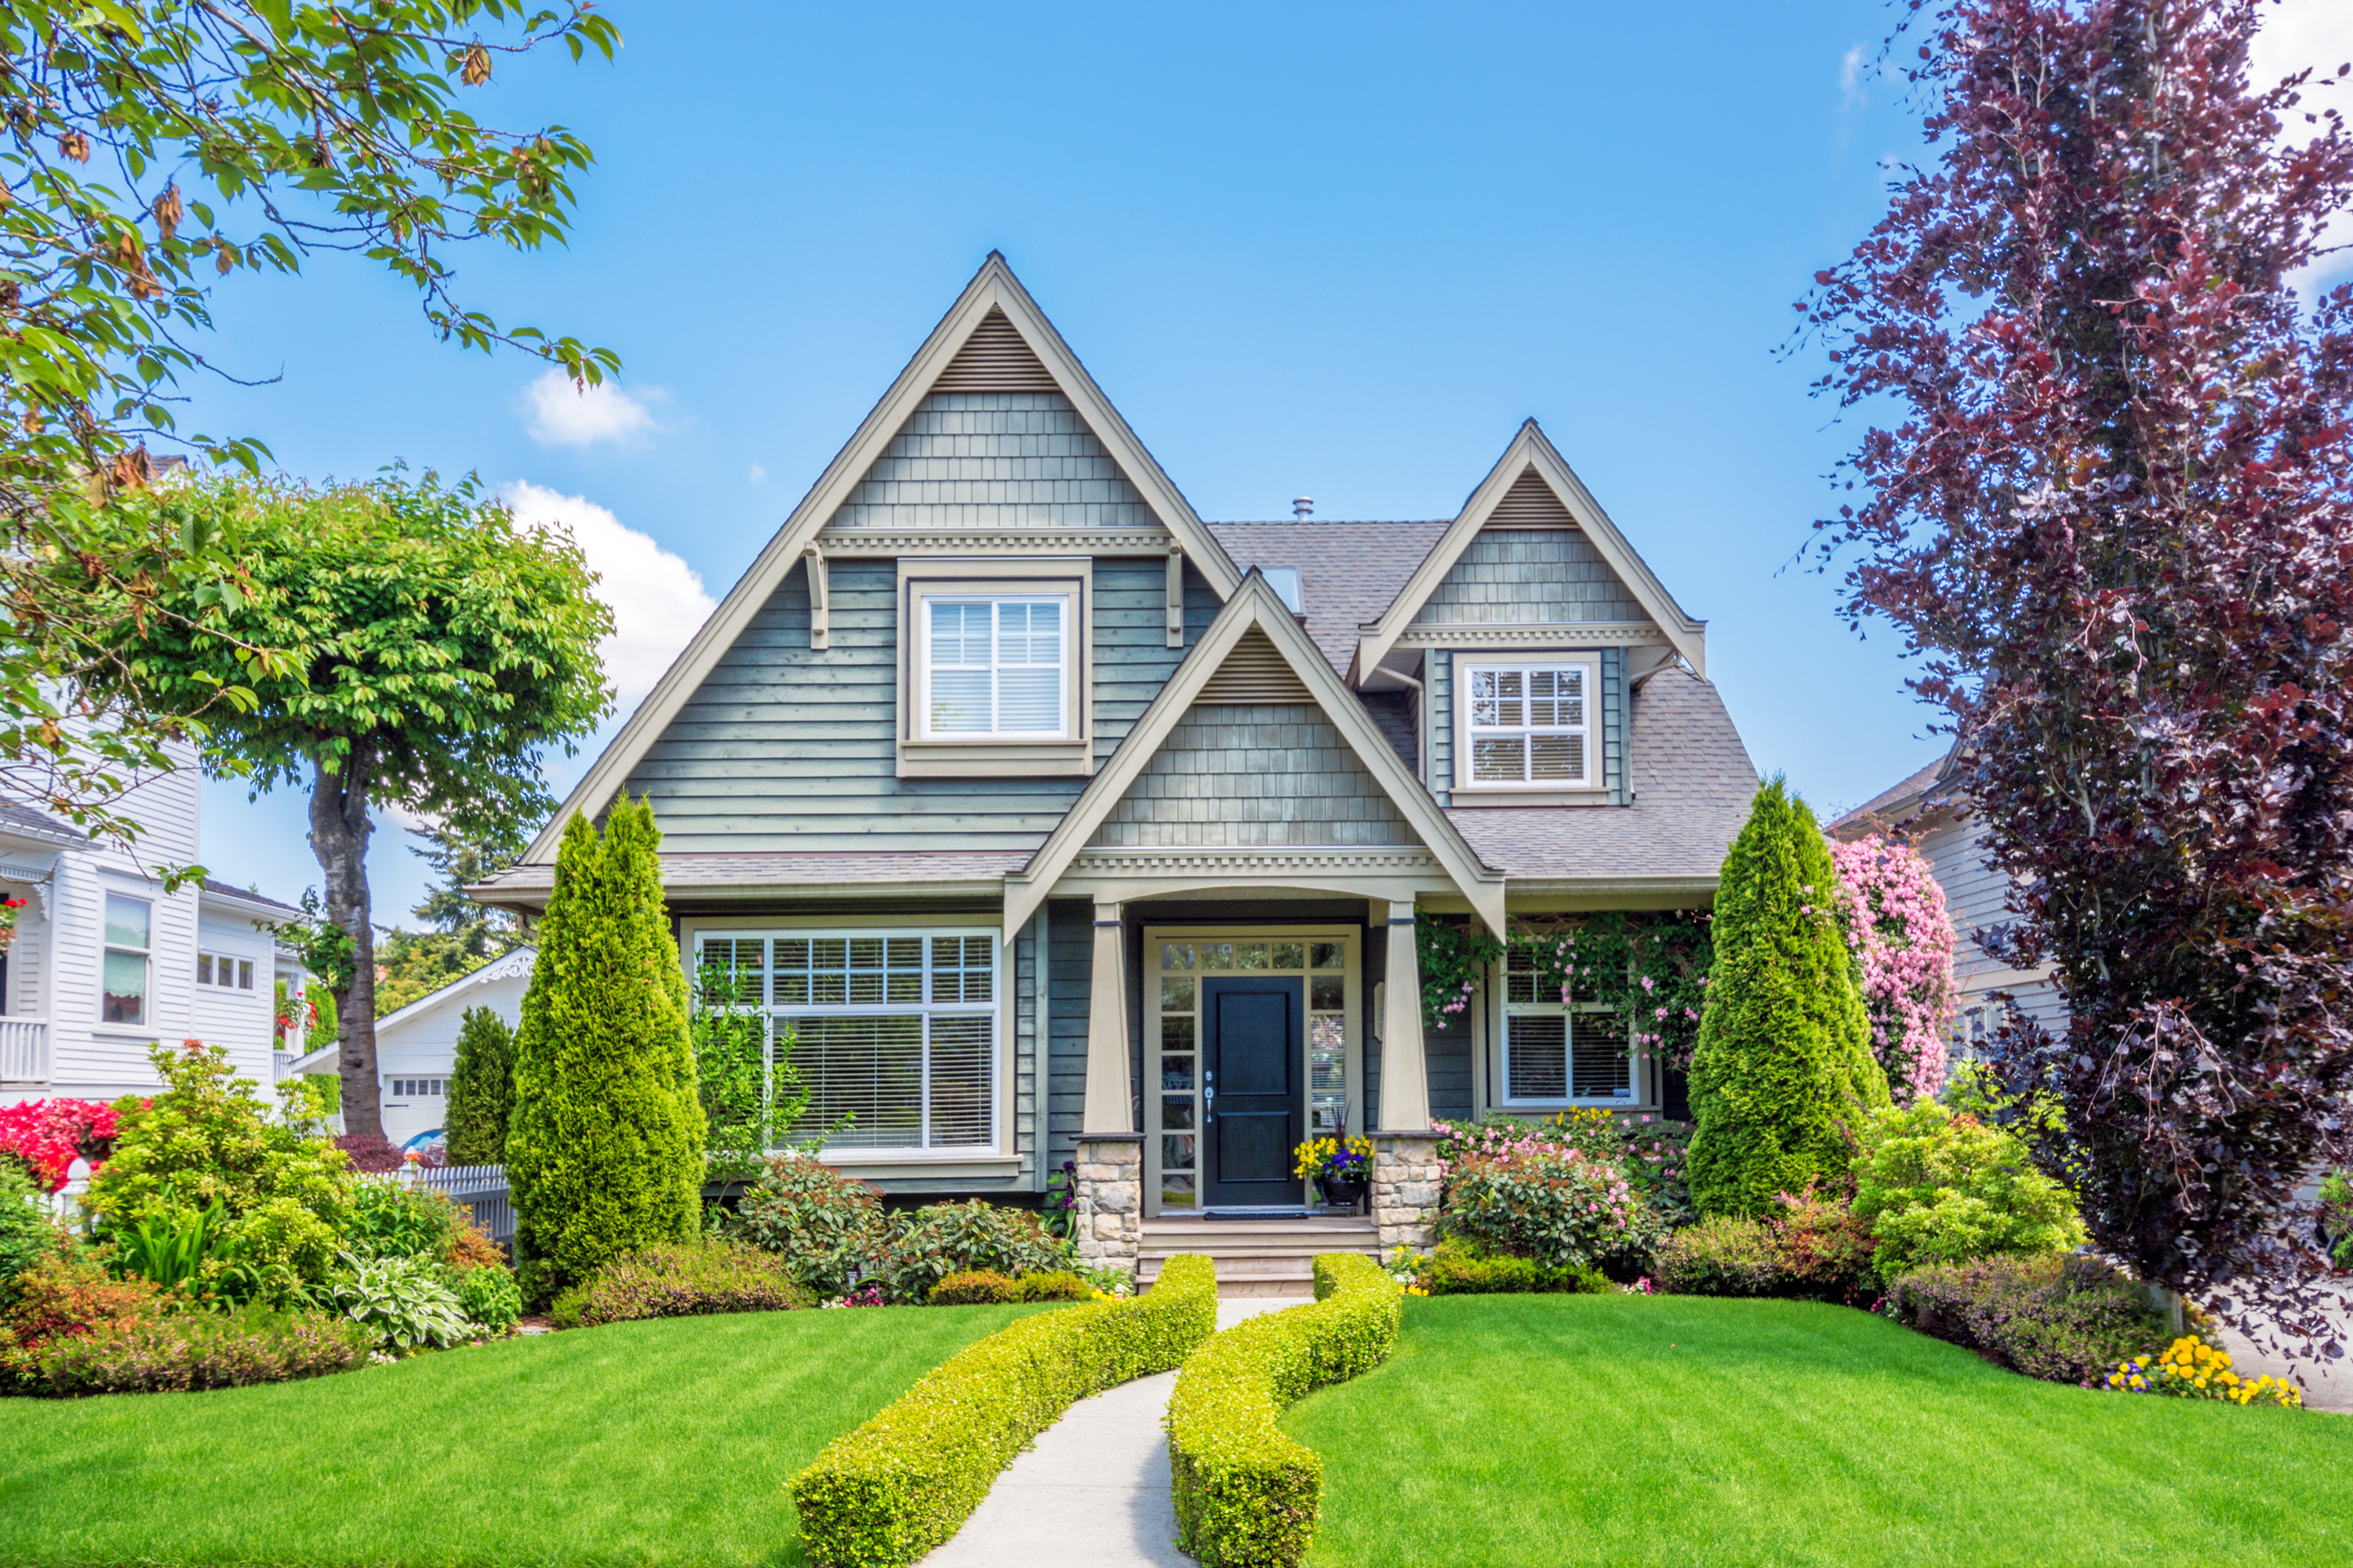 Beautiful Gray home with bright green grass on a sunny summer day.